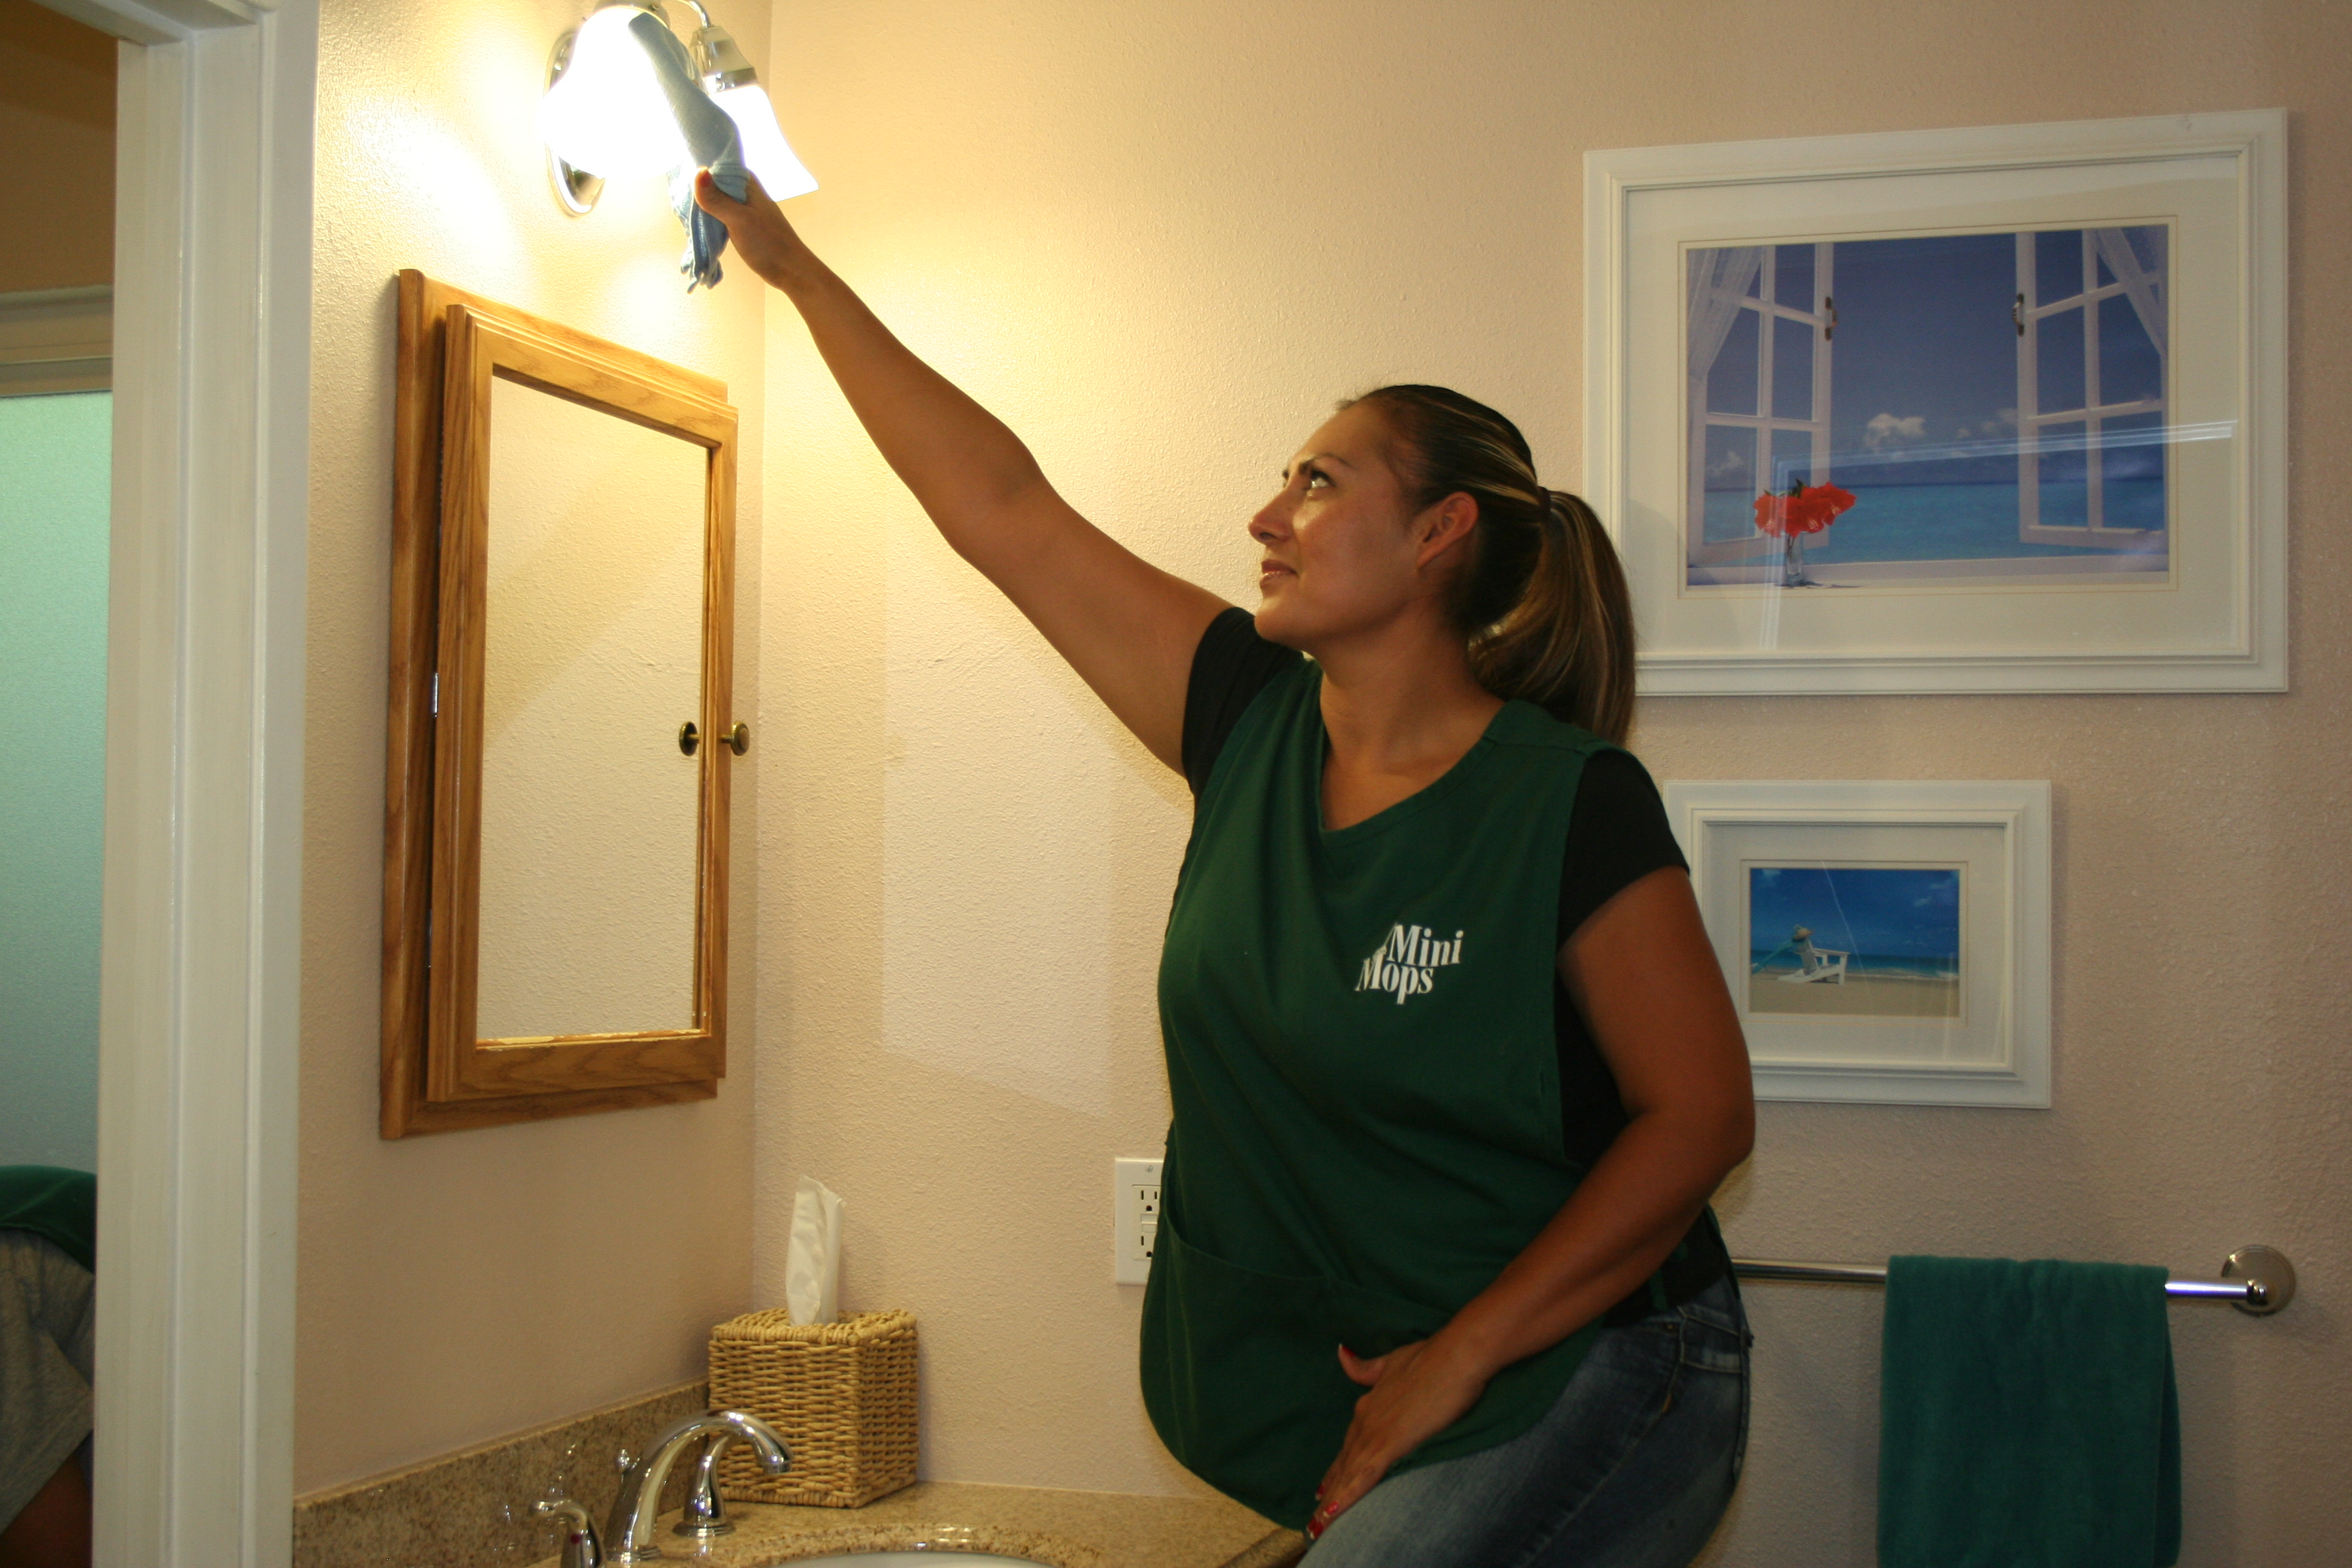 Mini Mops House Cleaning team member cleaning bathroom light fixtures